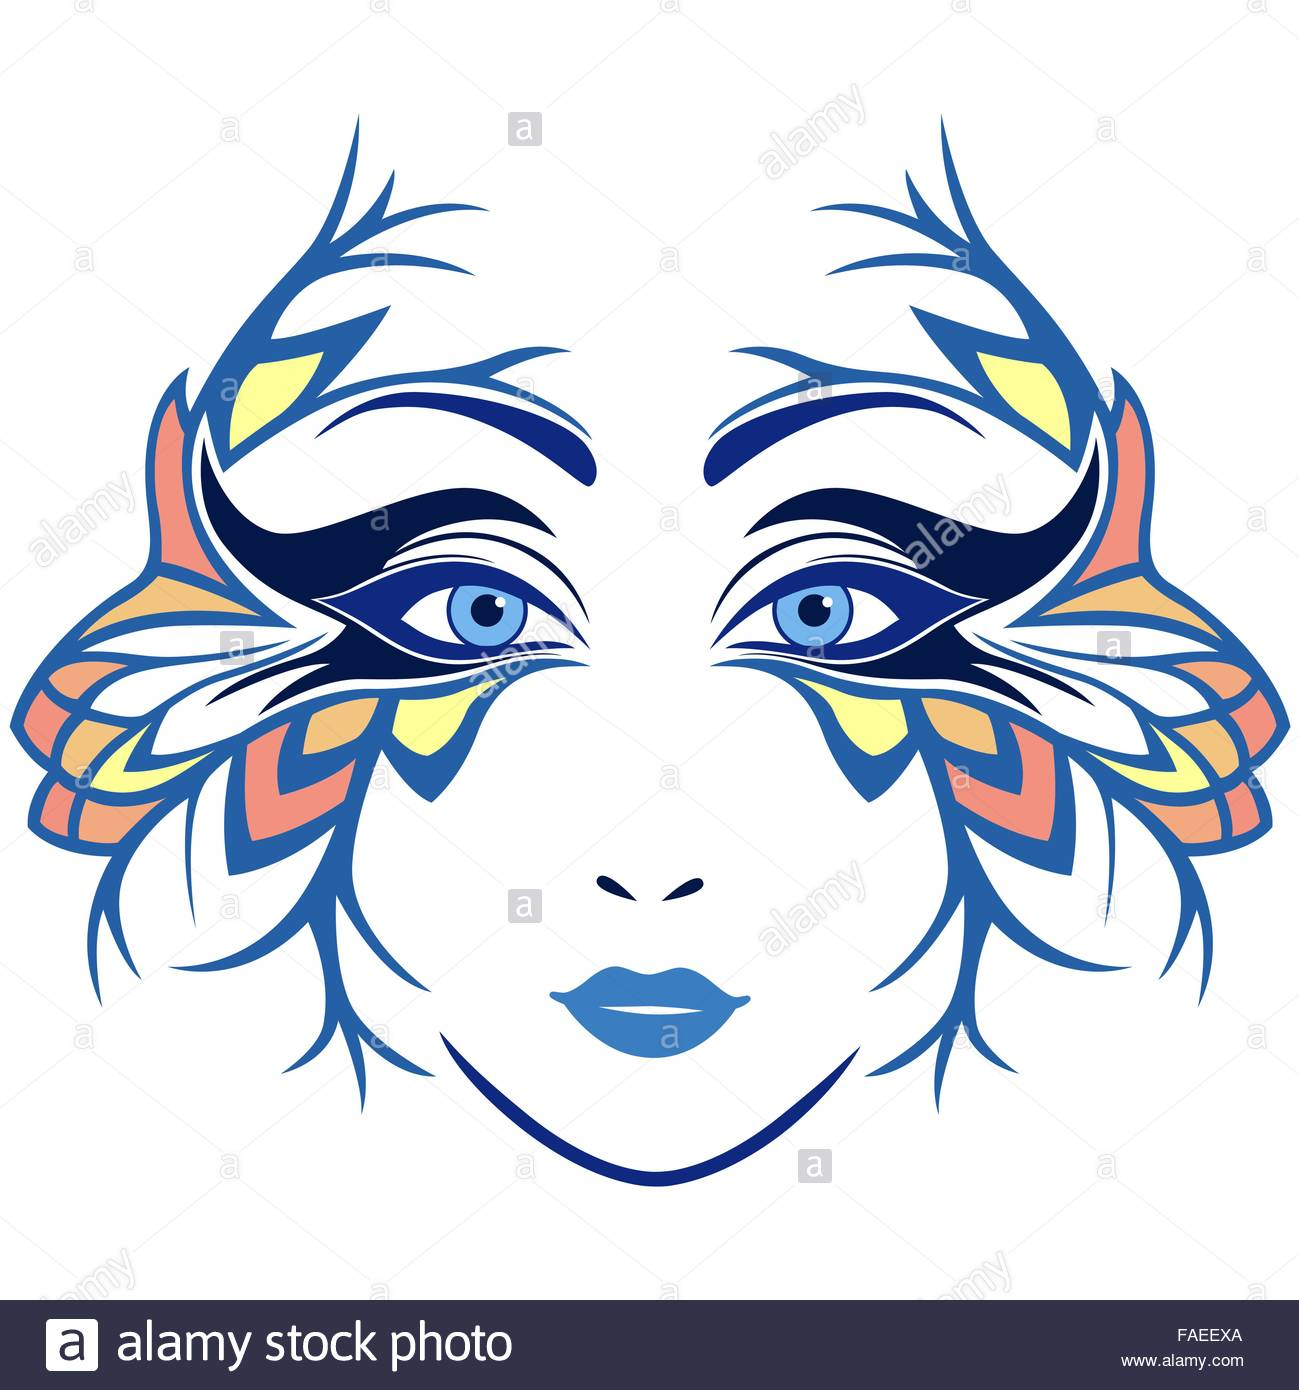 1299x1390 Abstract Colourful Women Face With Ornamental Stylized Mask, Hand